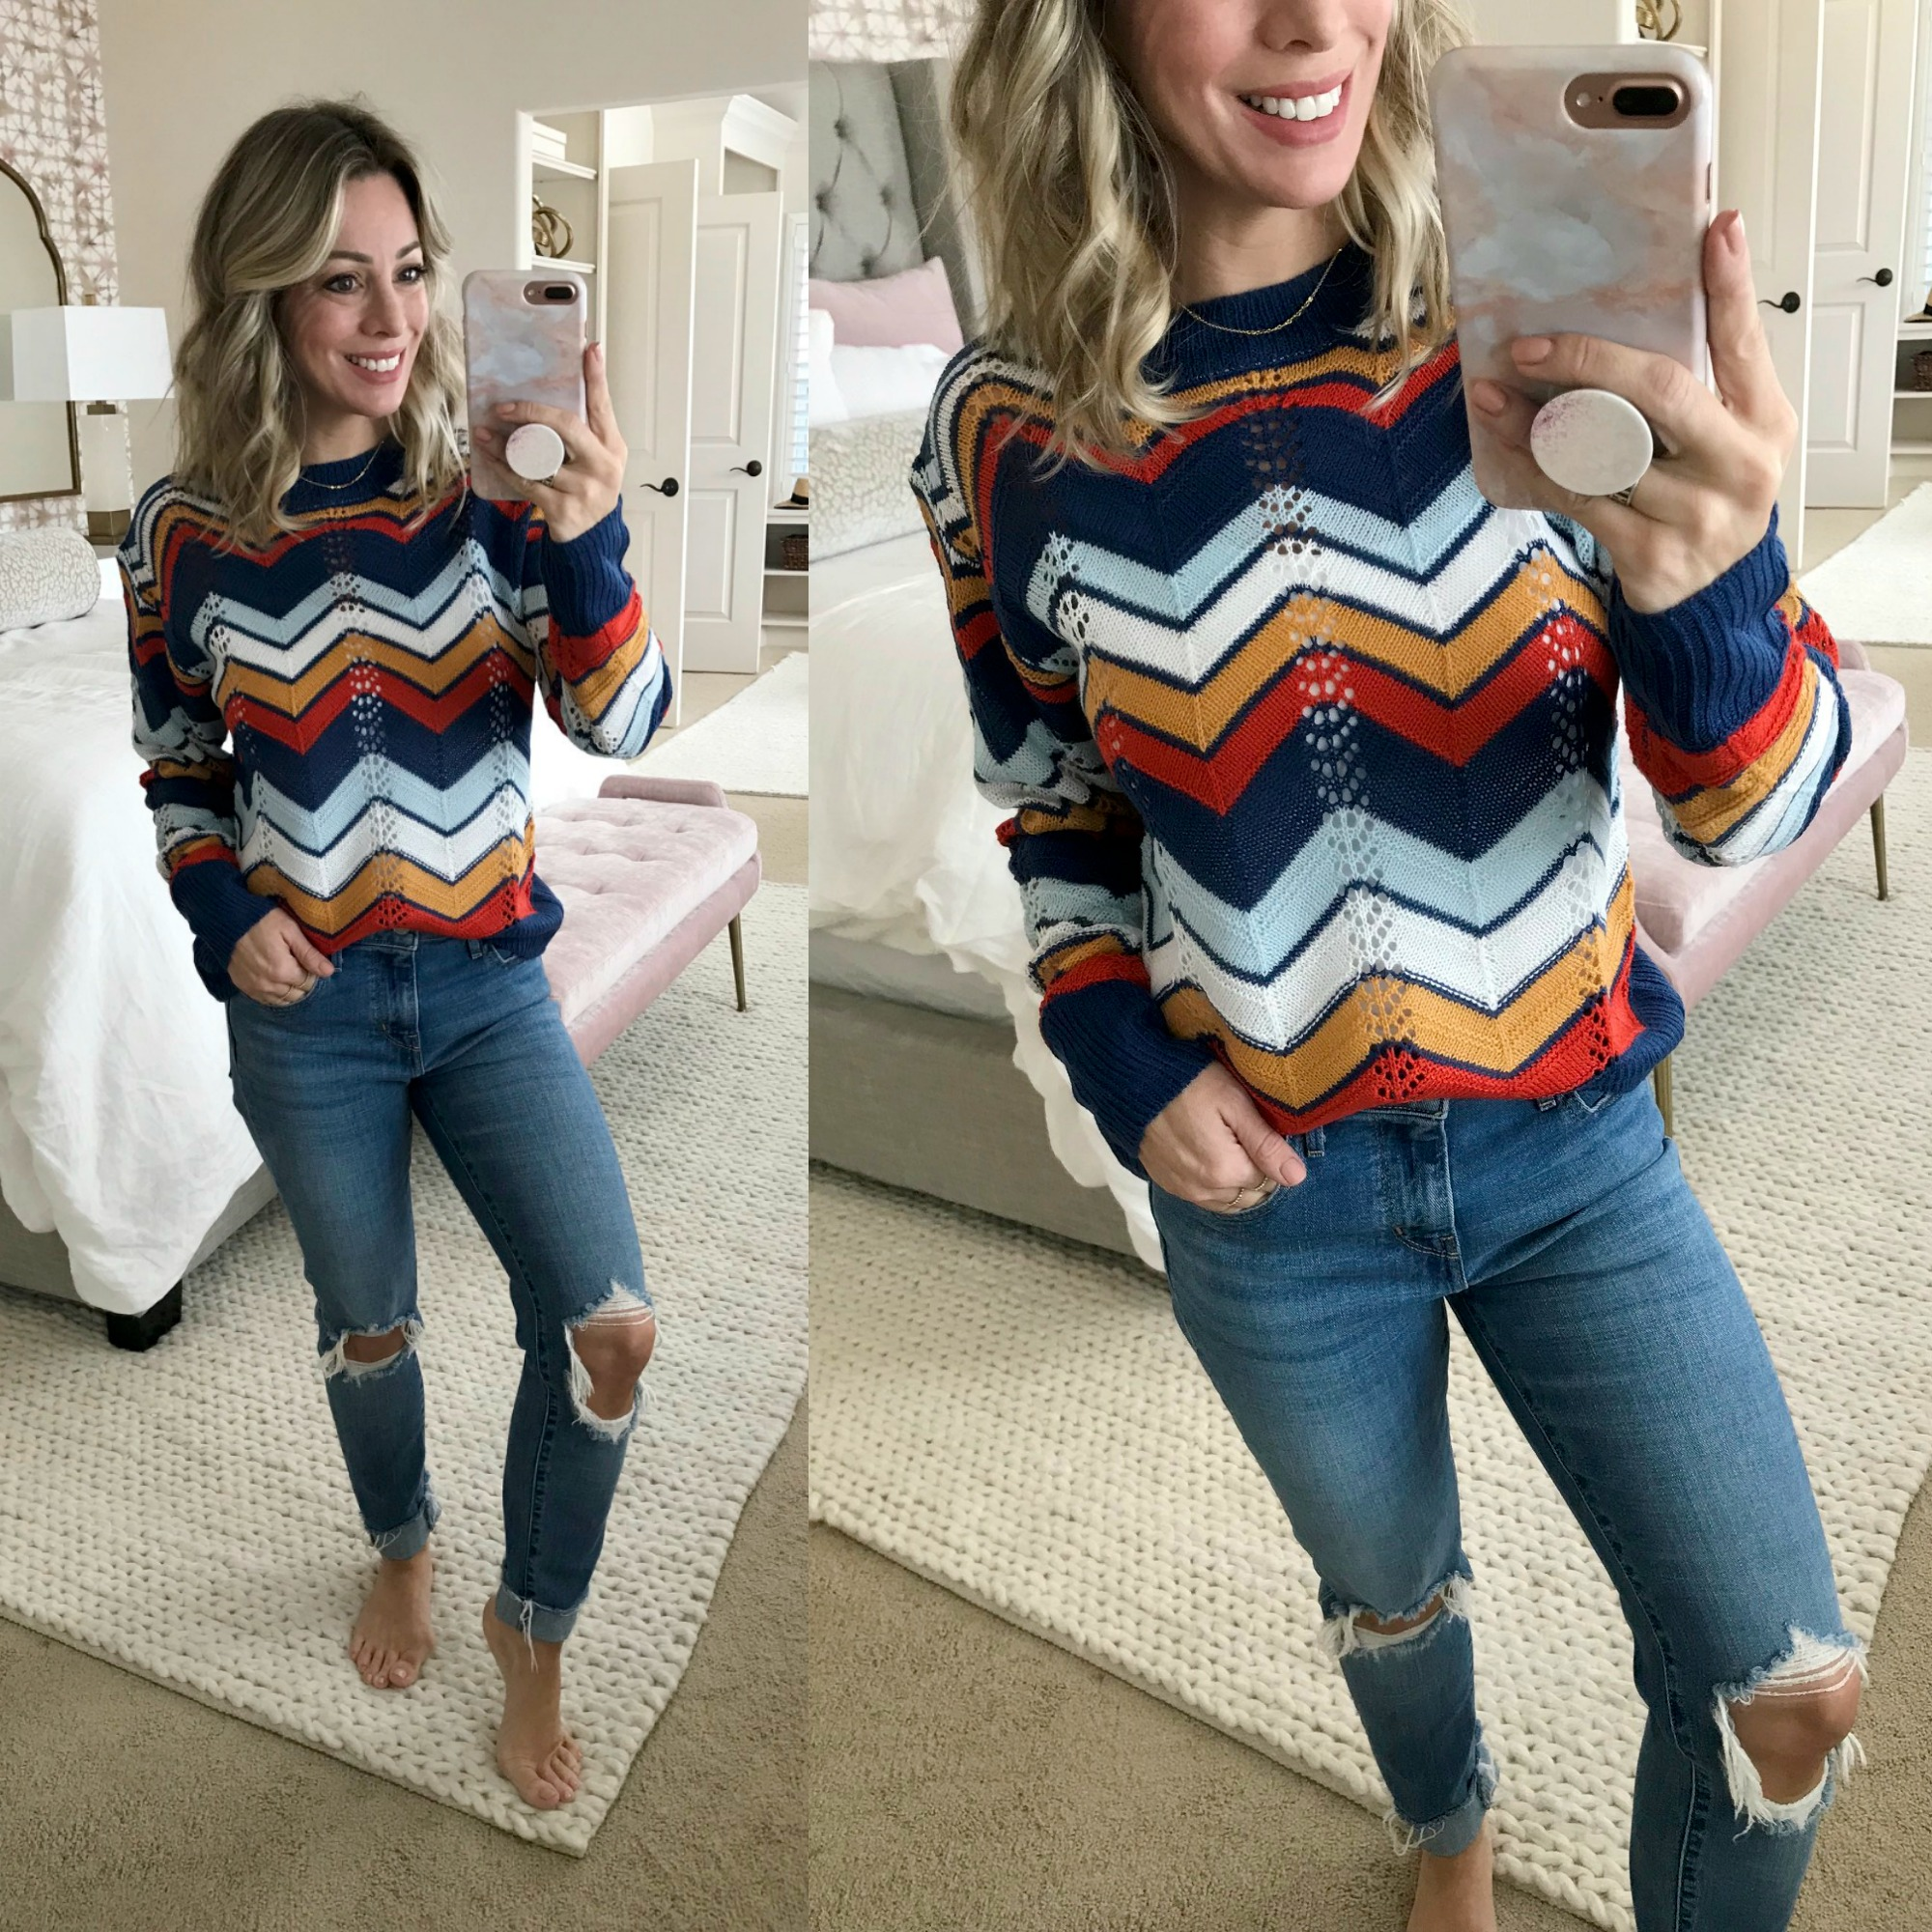 Amazon Fashion Haul - Chevron Sweater